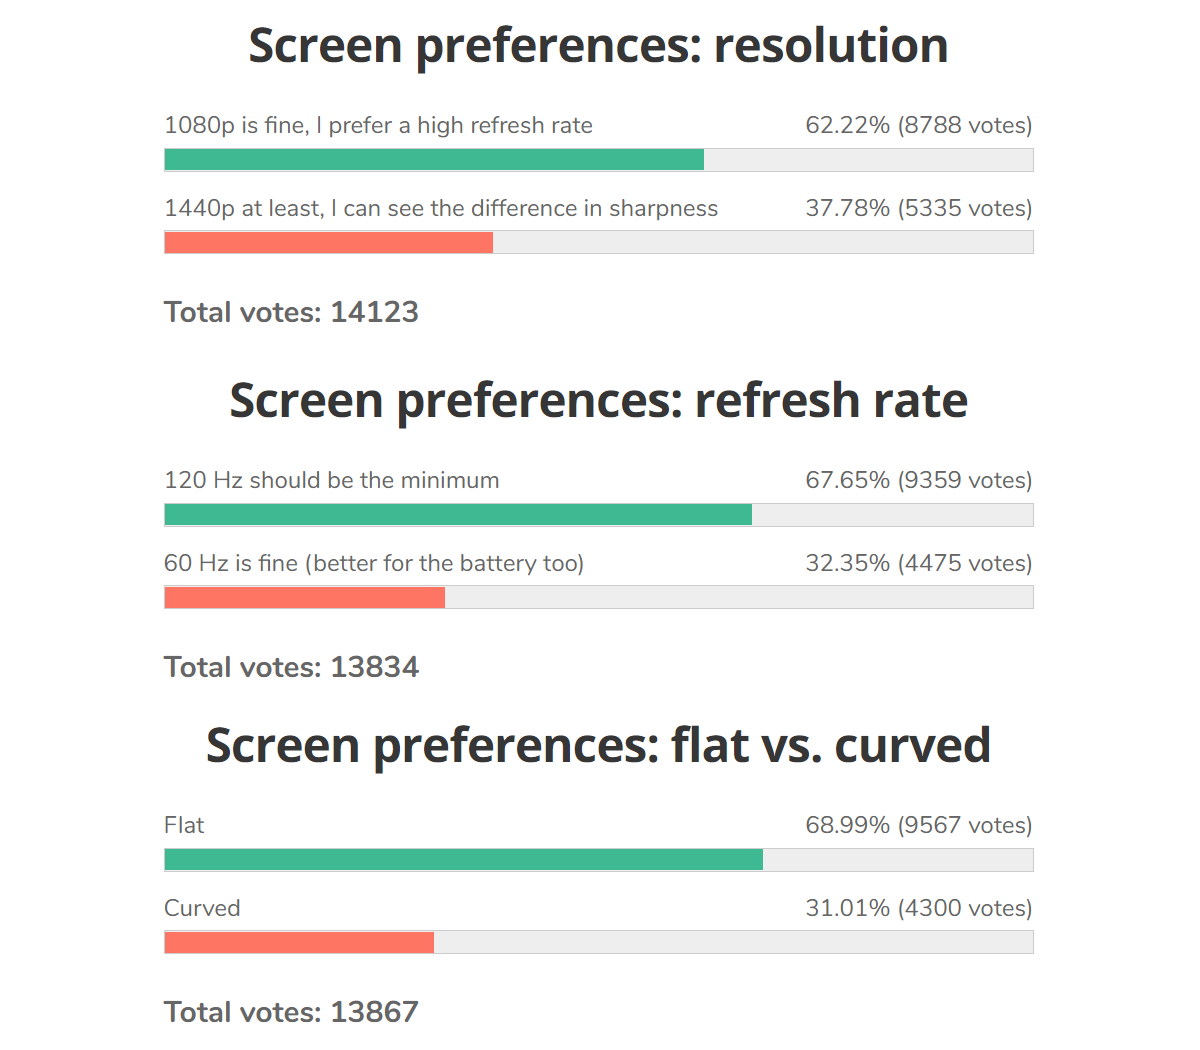 Weekly poll results: The ideal display is a flat 120Hz panel with 1080p resolution